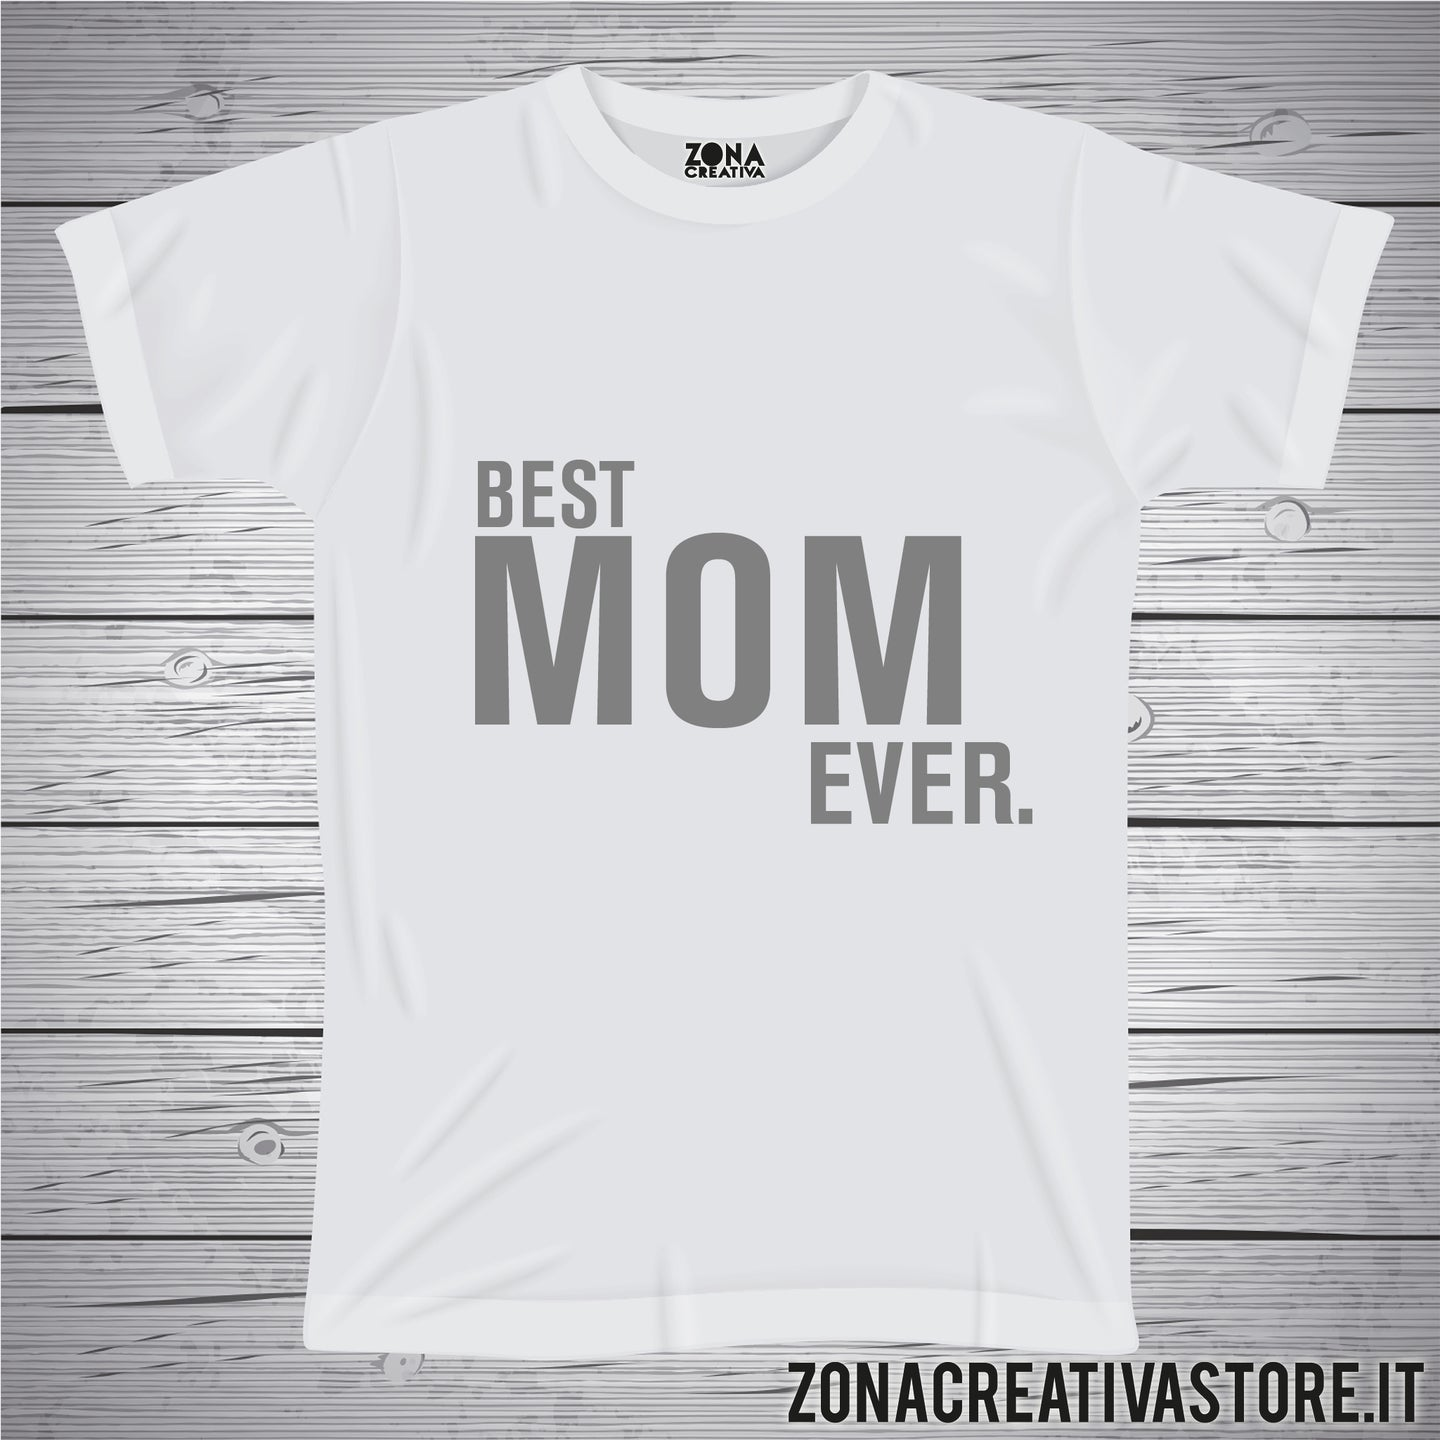 T-shirt per la festa della mamma BEST MOM EVER